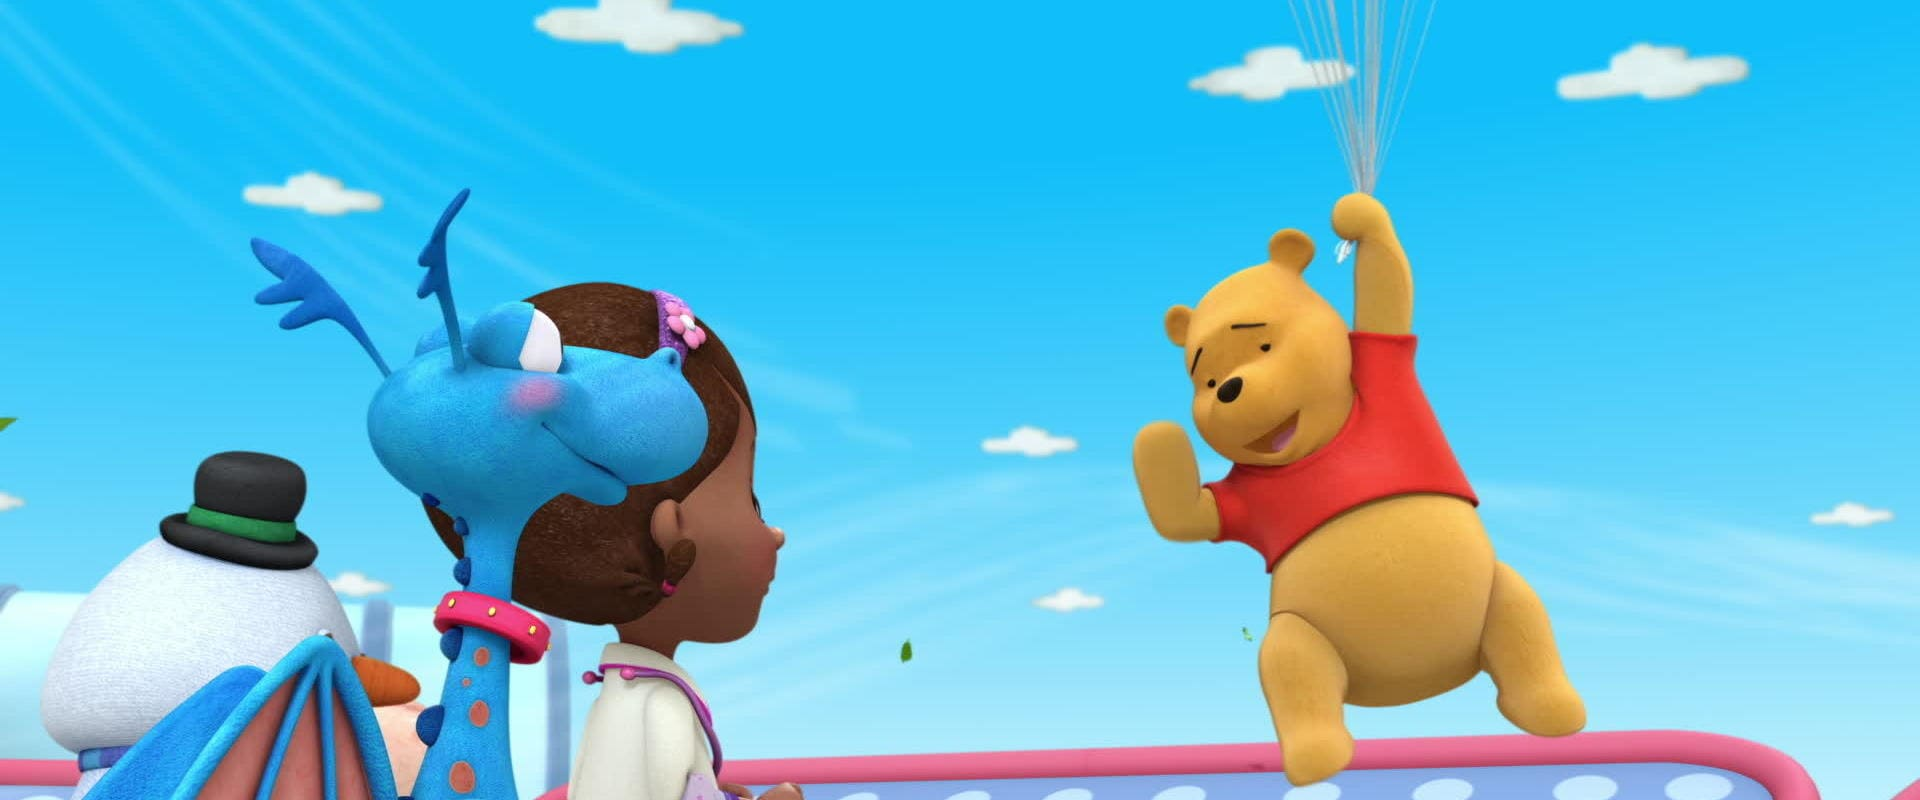 Toy Hospital: Into the Hundred Acre Wood!